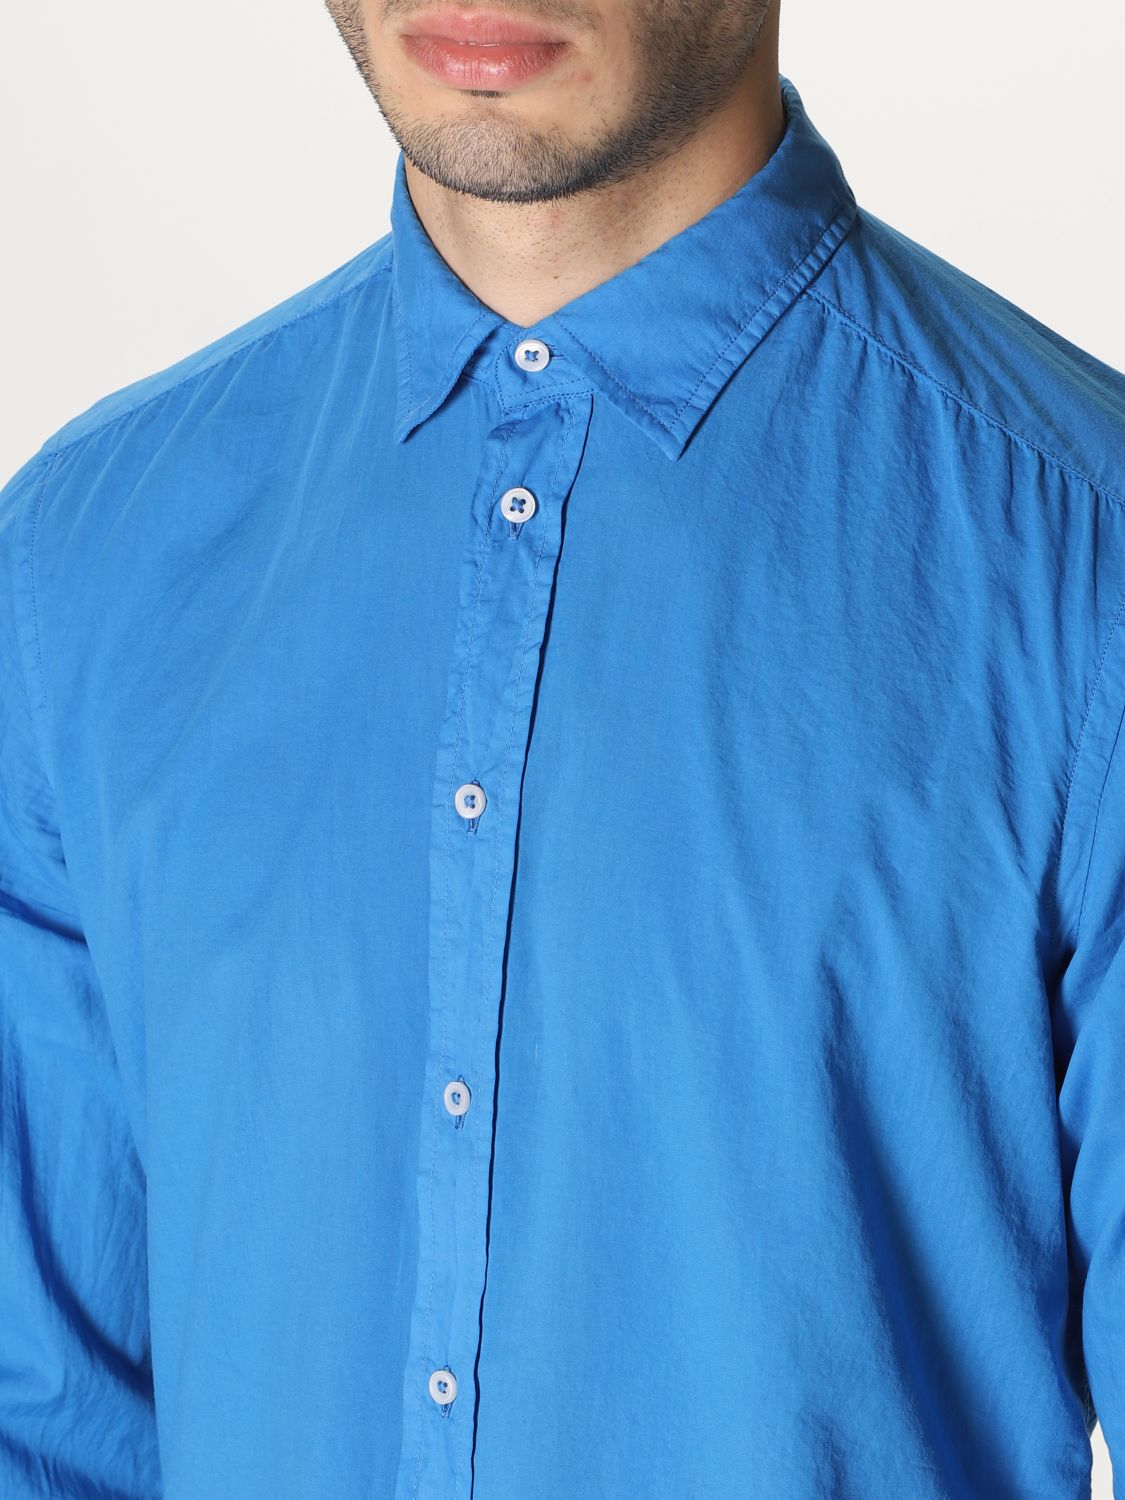 Shirt An American Tradition: Shirt men Bd Baggies royal blue 3